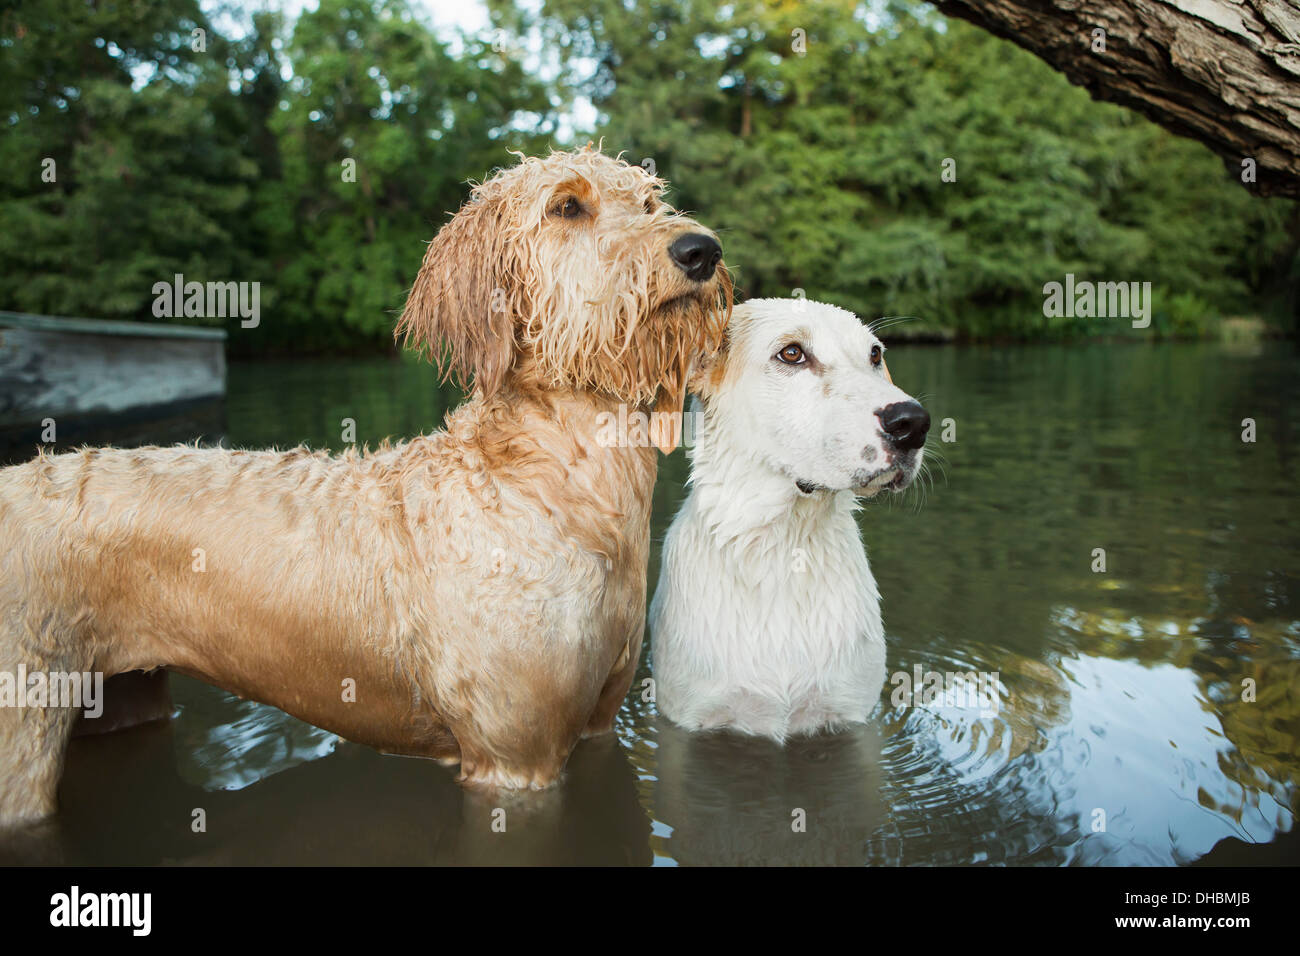 Labradoodle Stock Photos Labradoodle Stock Images Alamy